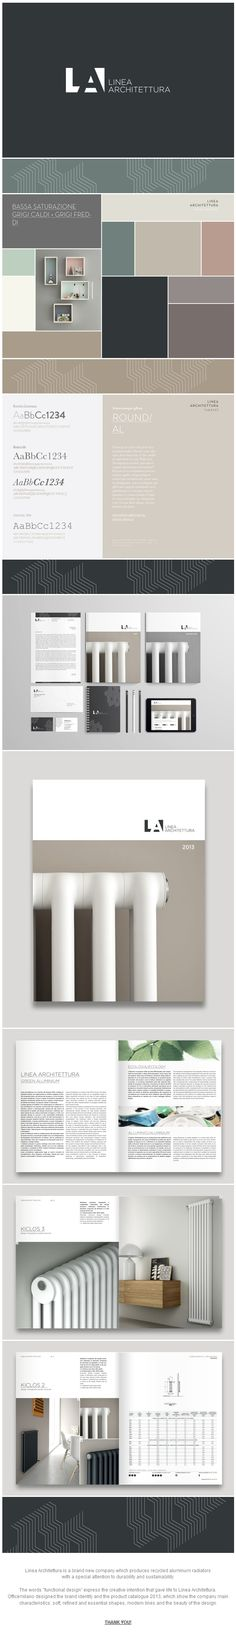 Linea Architettura | Brand Identity & Catalogue 2013 by Officemilano http://www.behance.net/officemilano